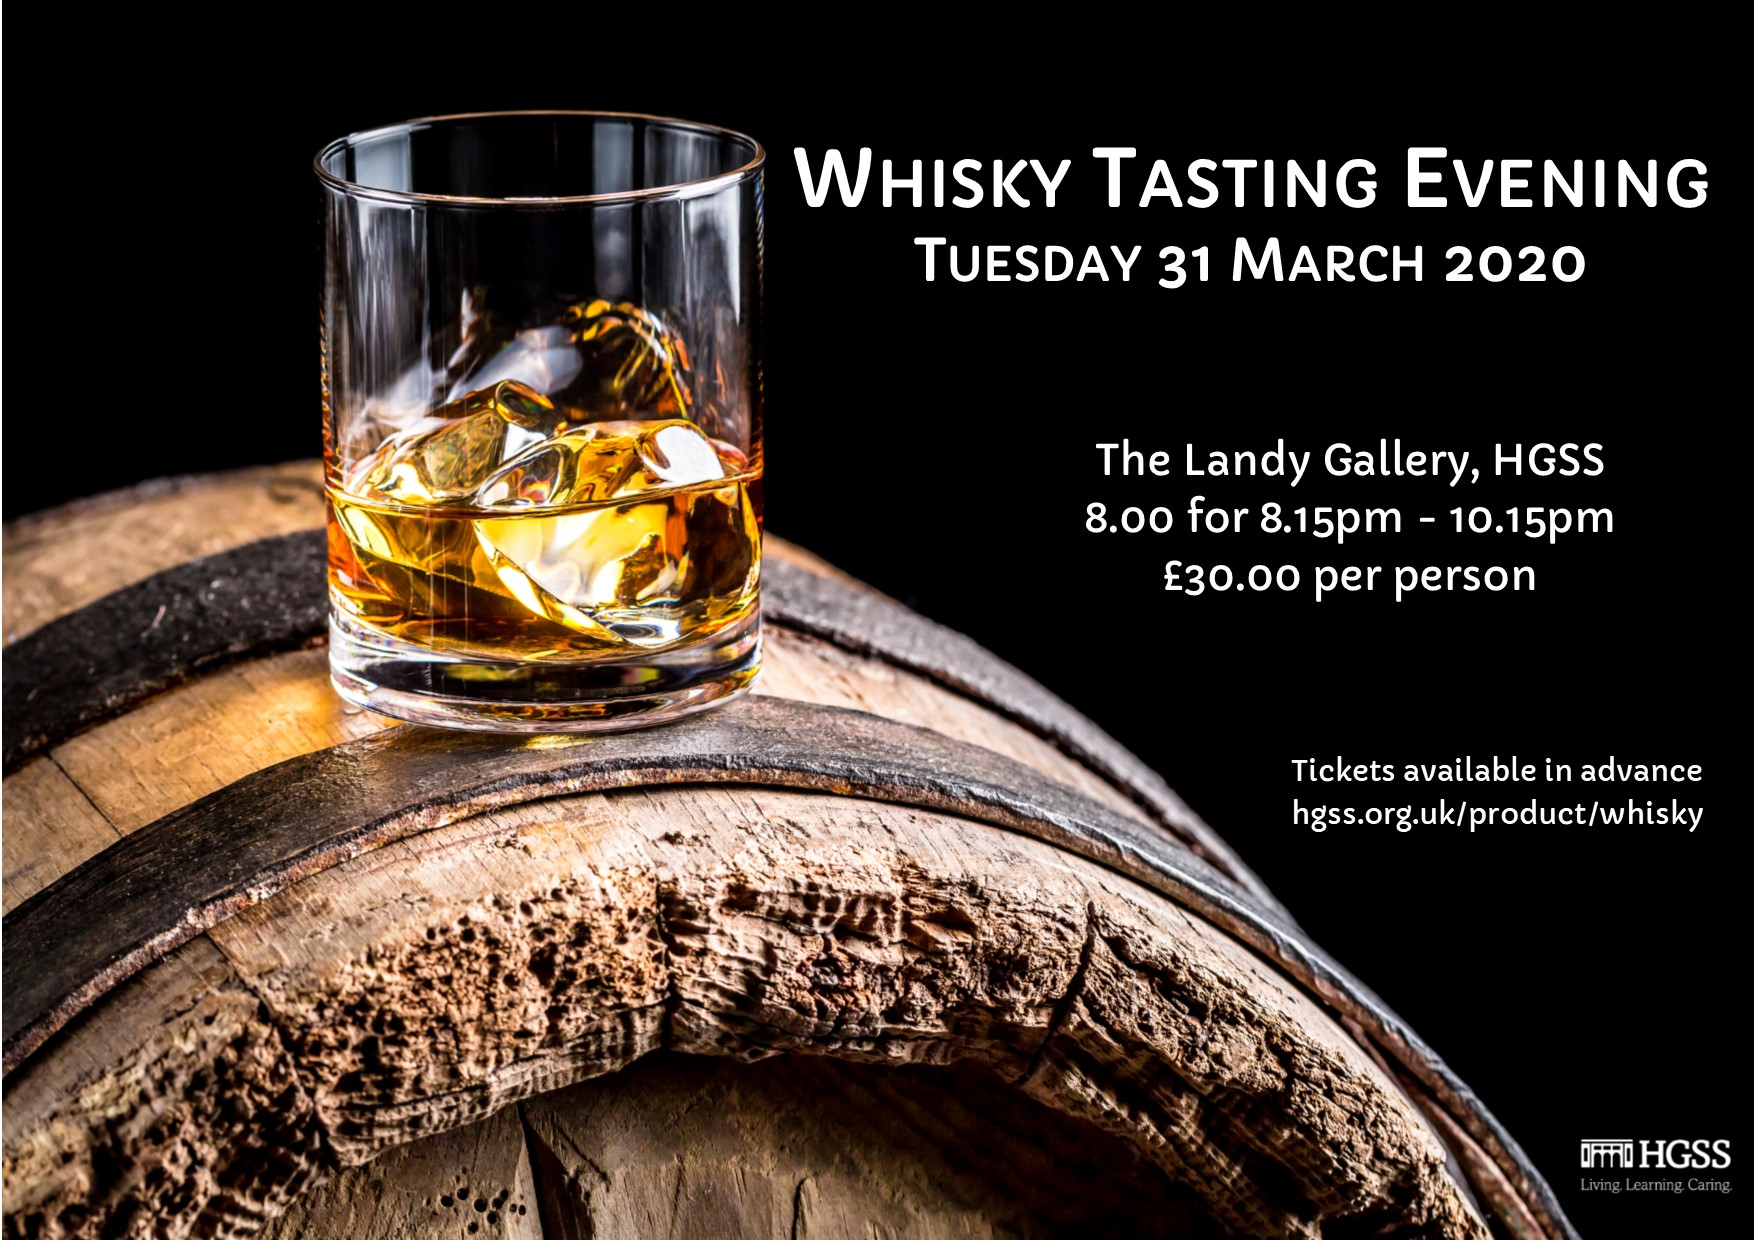 HGSS Whisky Tasting Evening - Postponed @ The Landy Gallery